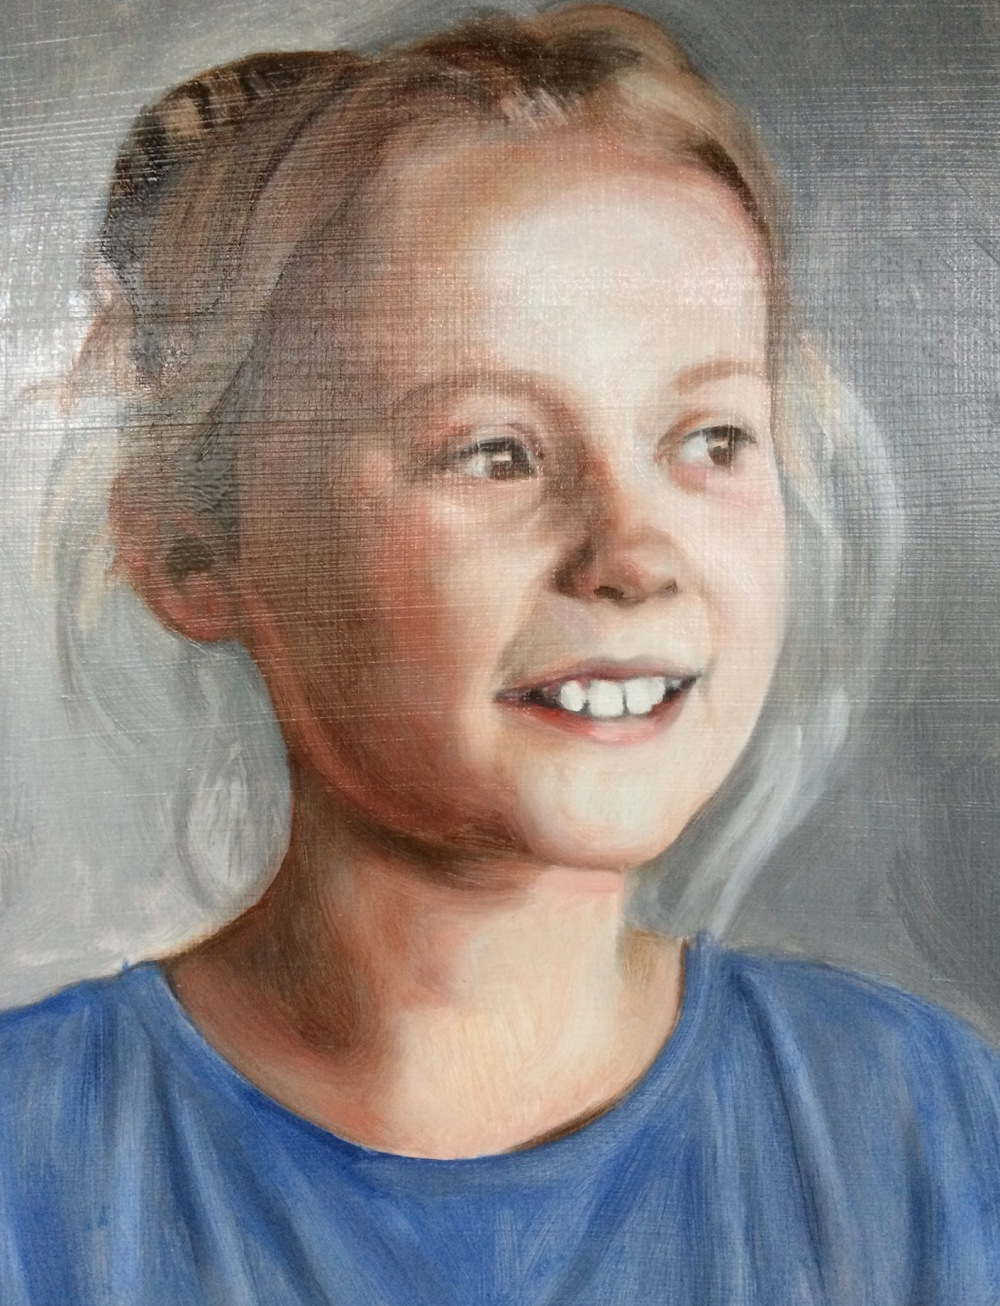 First glaze over a grisaille underpainting, oil on board by portrait painter and artist Matt Harvey